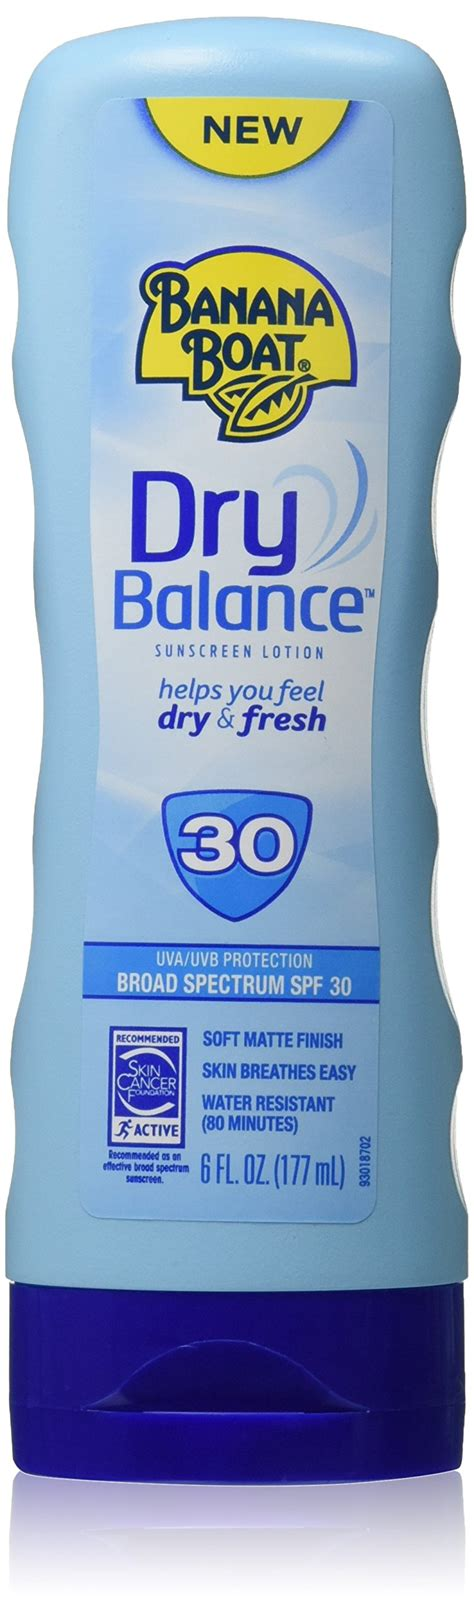 banana boat unscented sunscreen banana boat sunscreen dry balance broad